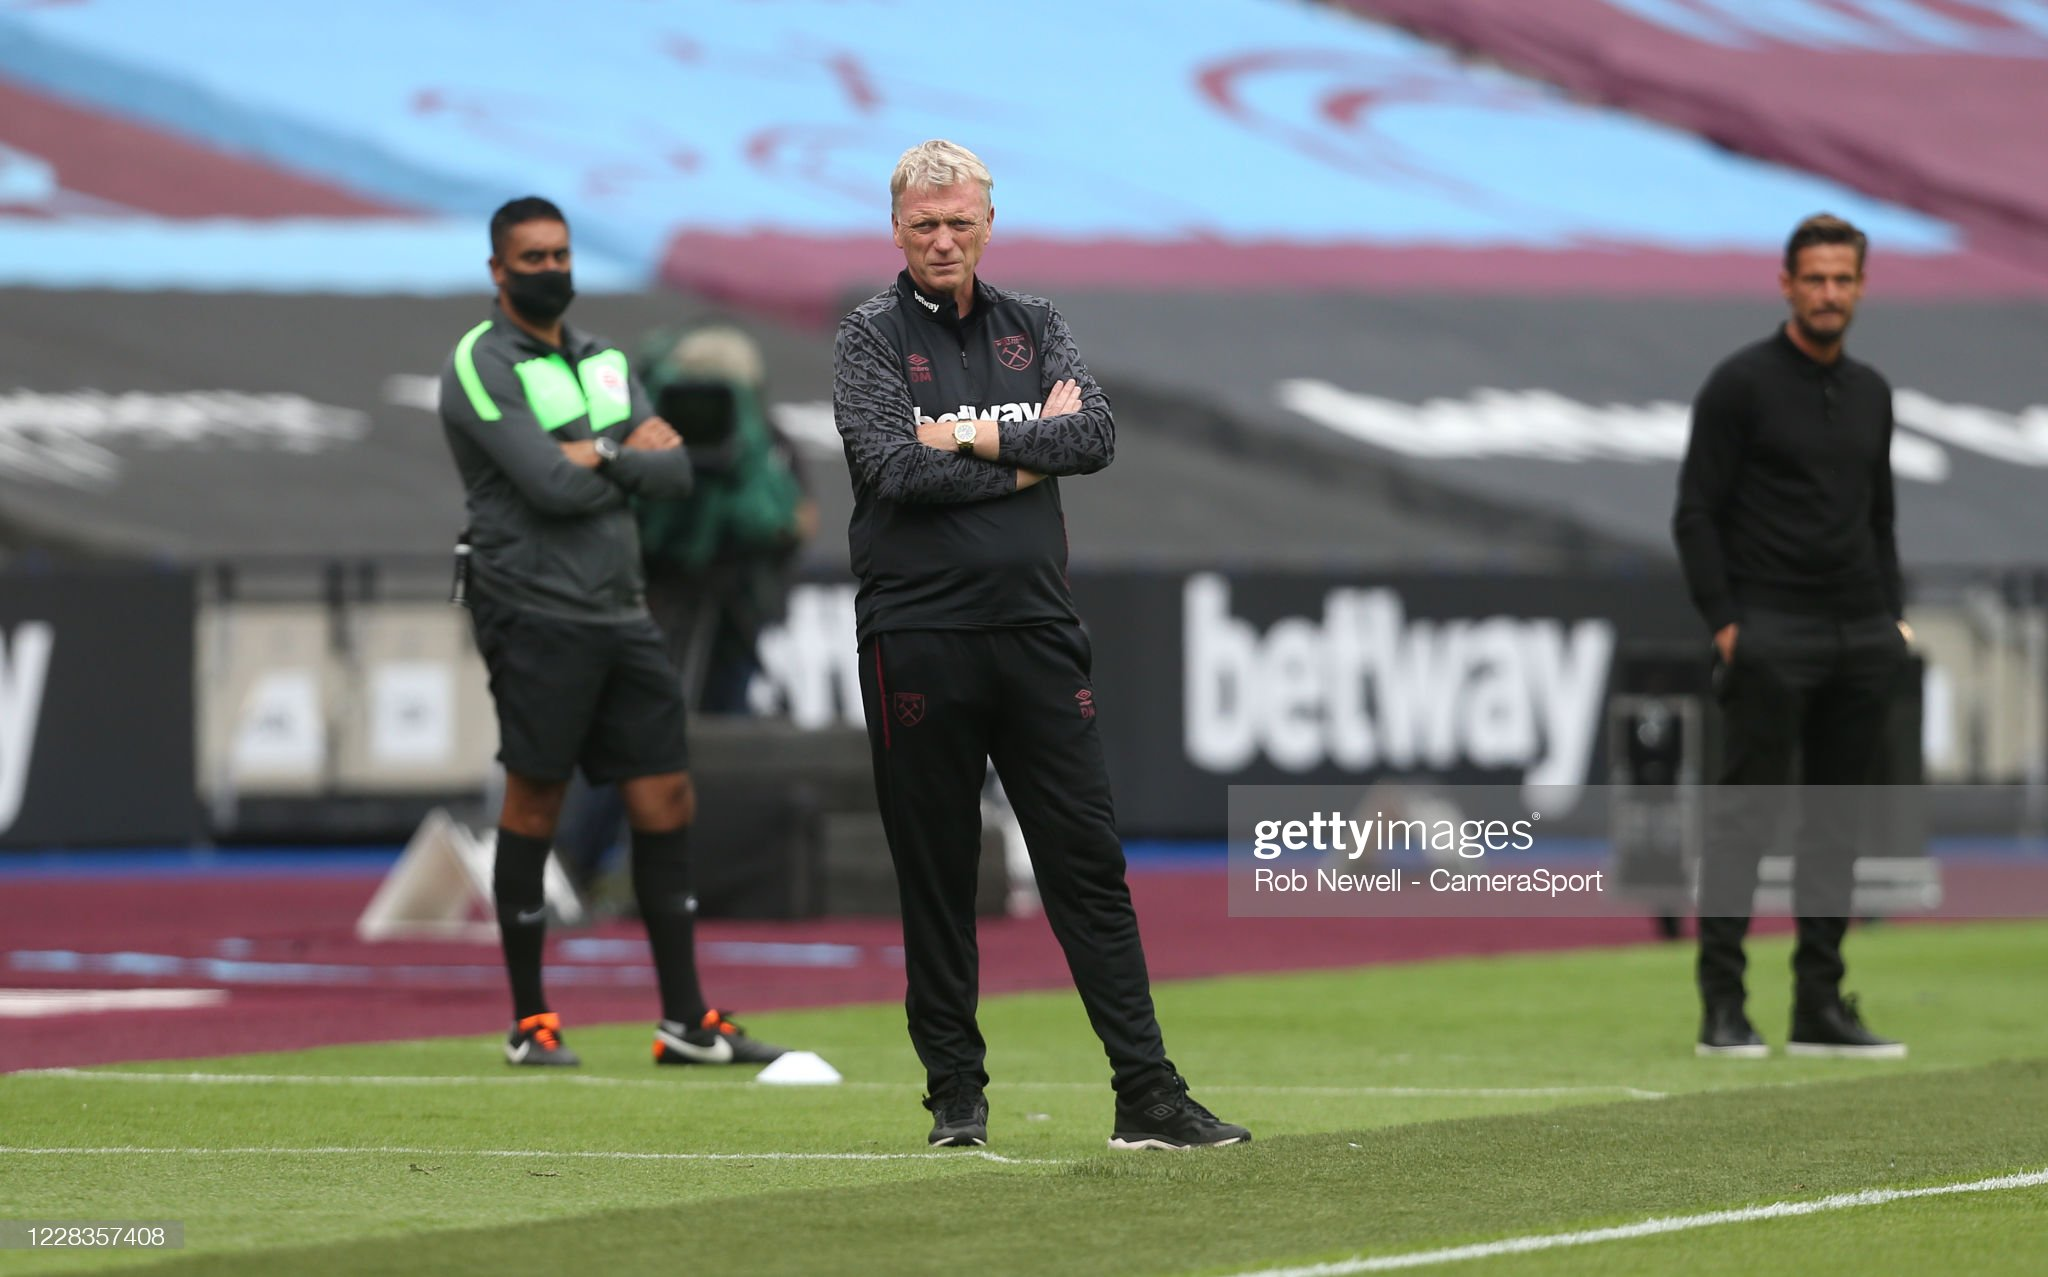 West Ham United v AFC Bournemouth - Pre-Season Friendly : News Photo